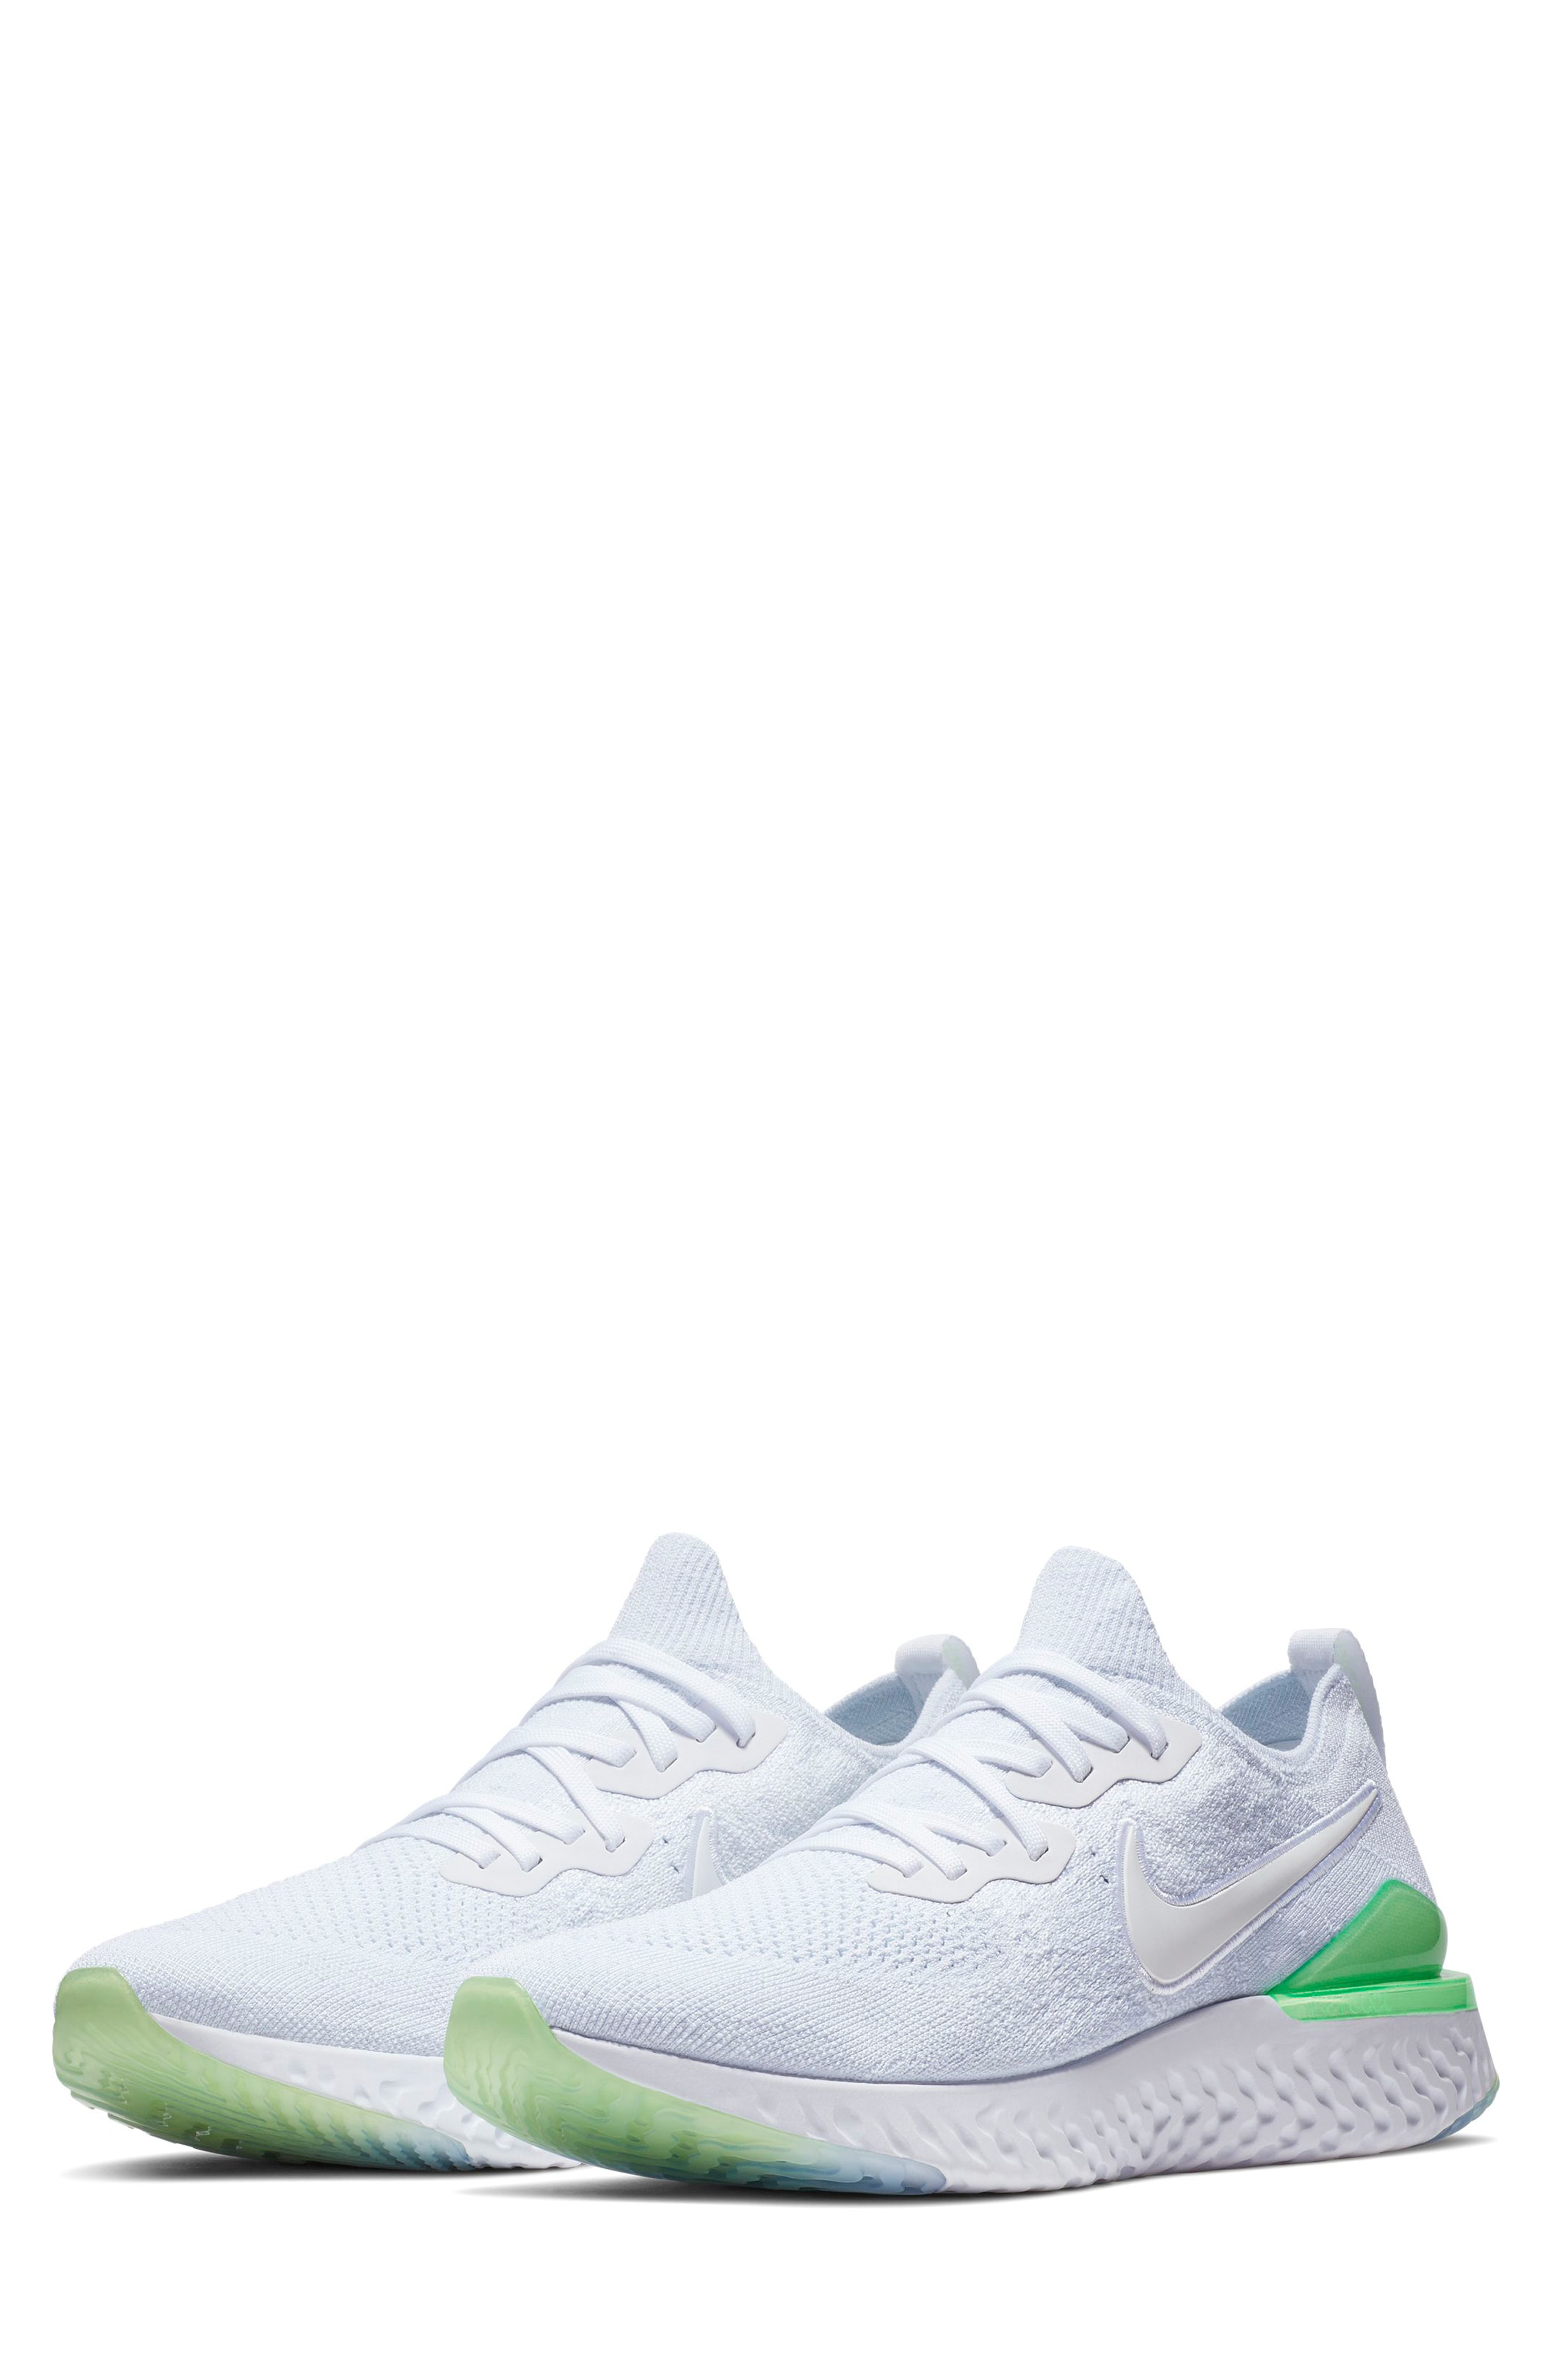 3579cd092 Nike Epic React Flyknit 2 Running Shoe In White/ White/ Lime Blast ...